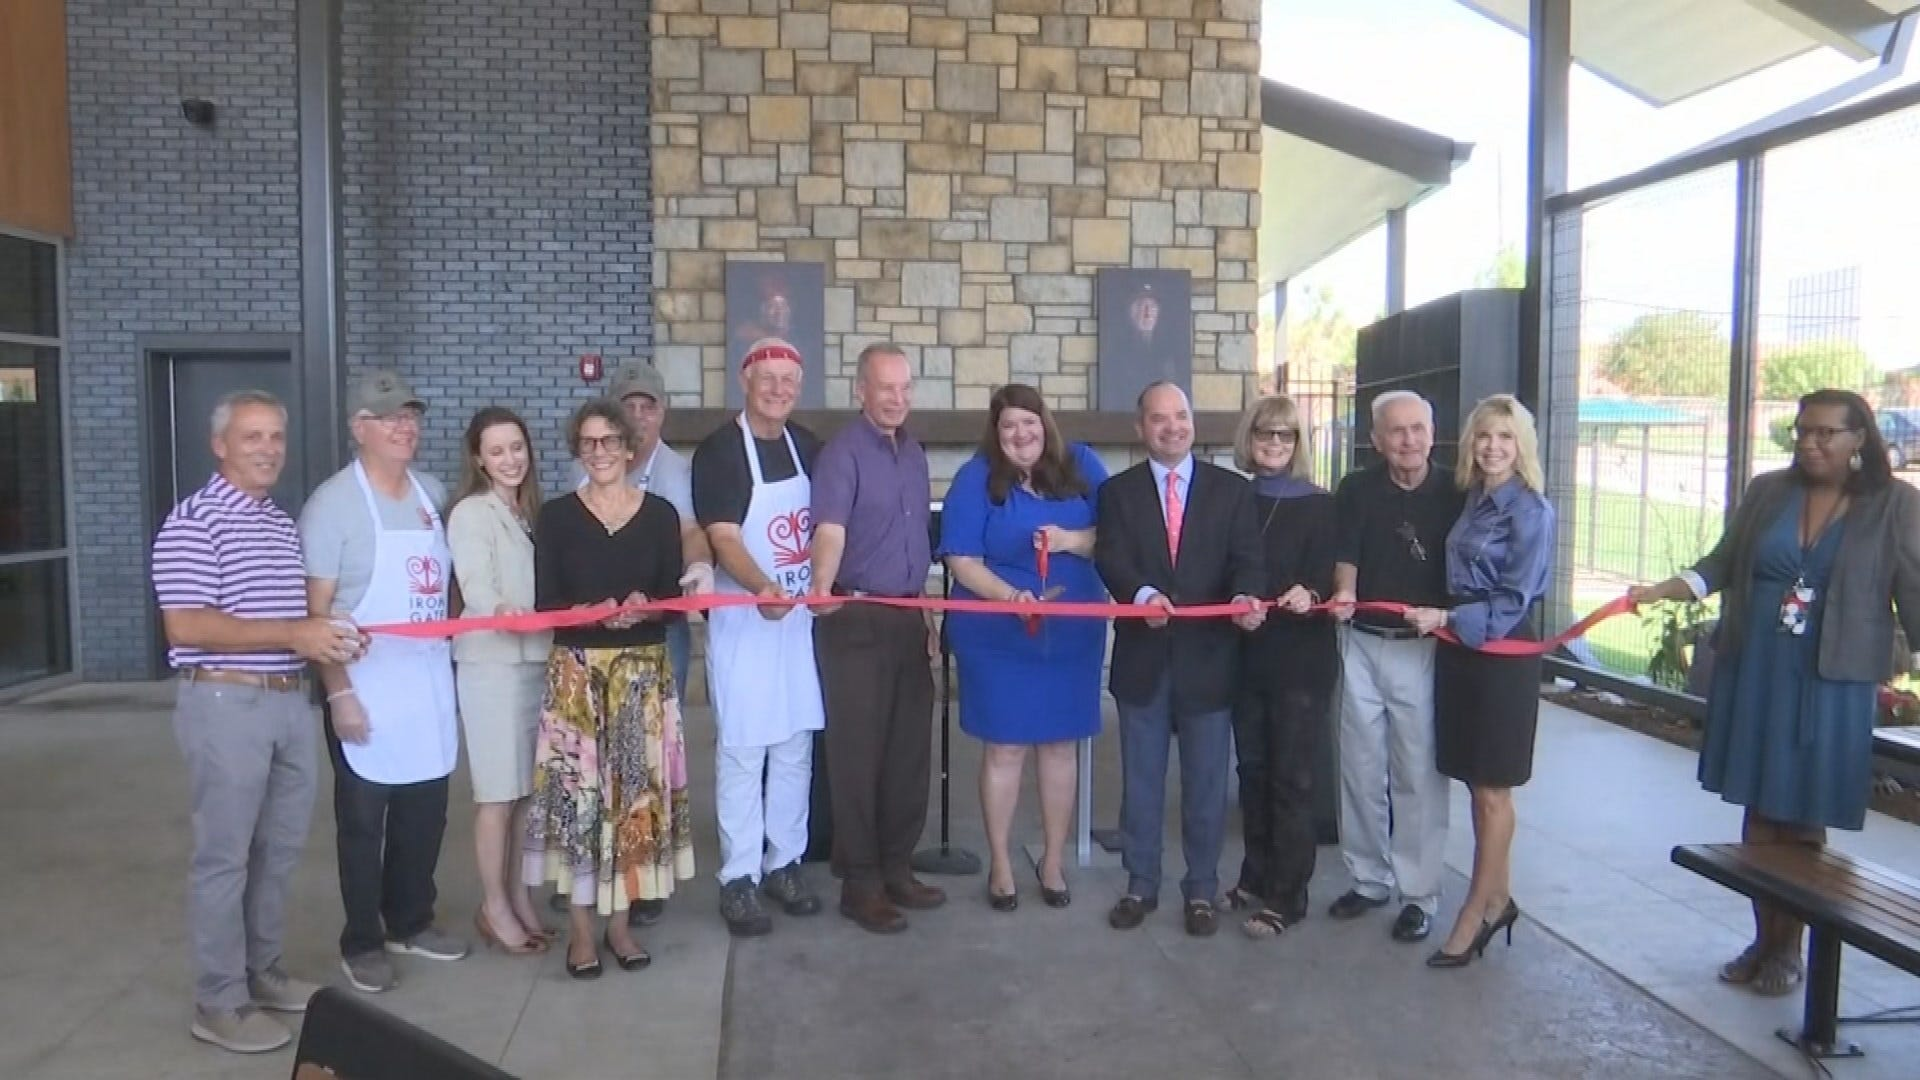 Iron Gate Celebrates Grand Opening Of New Facility